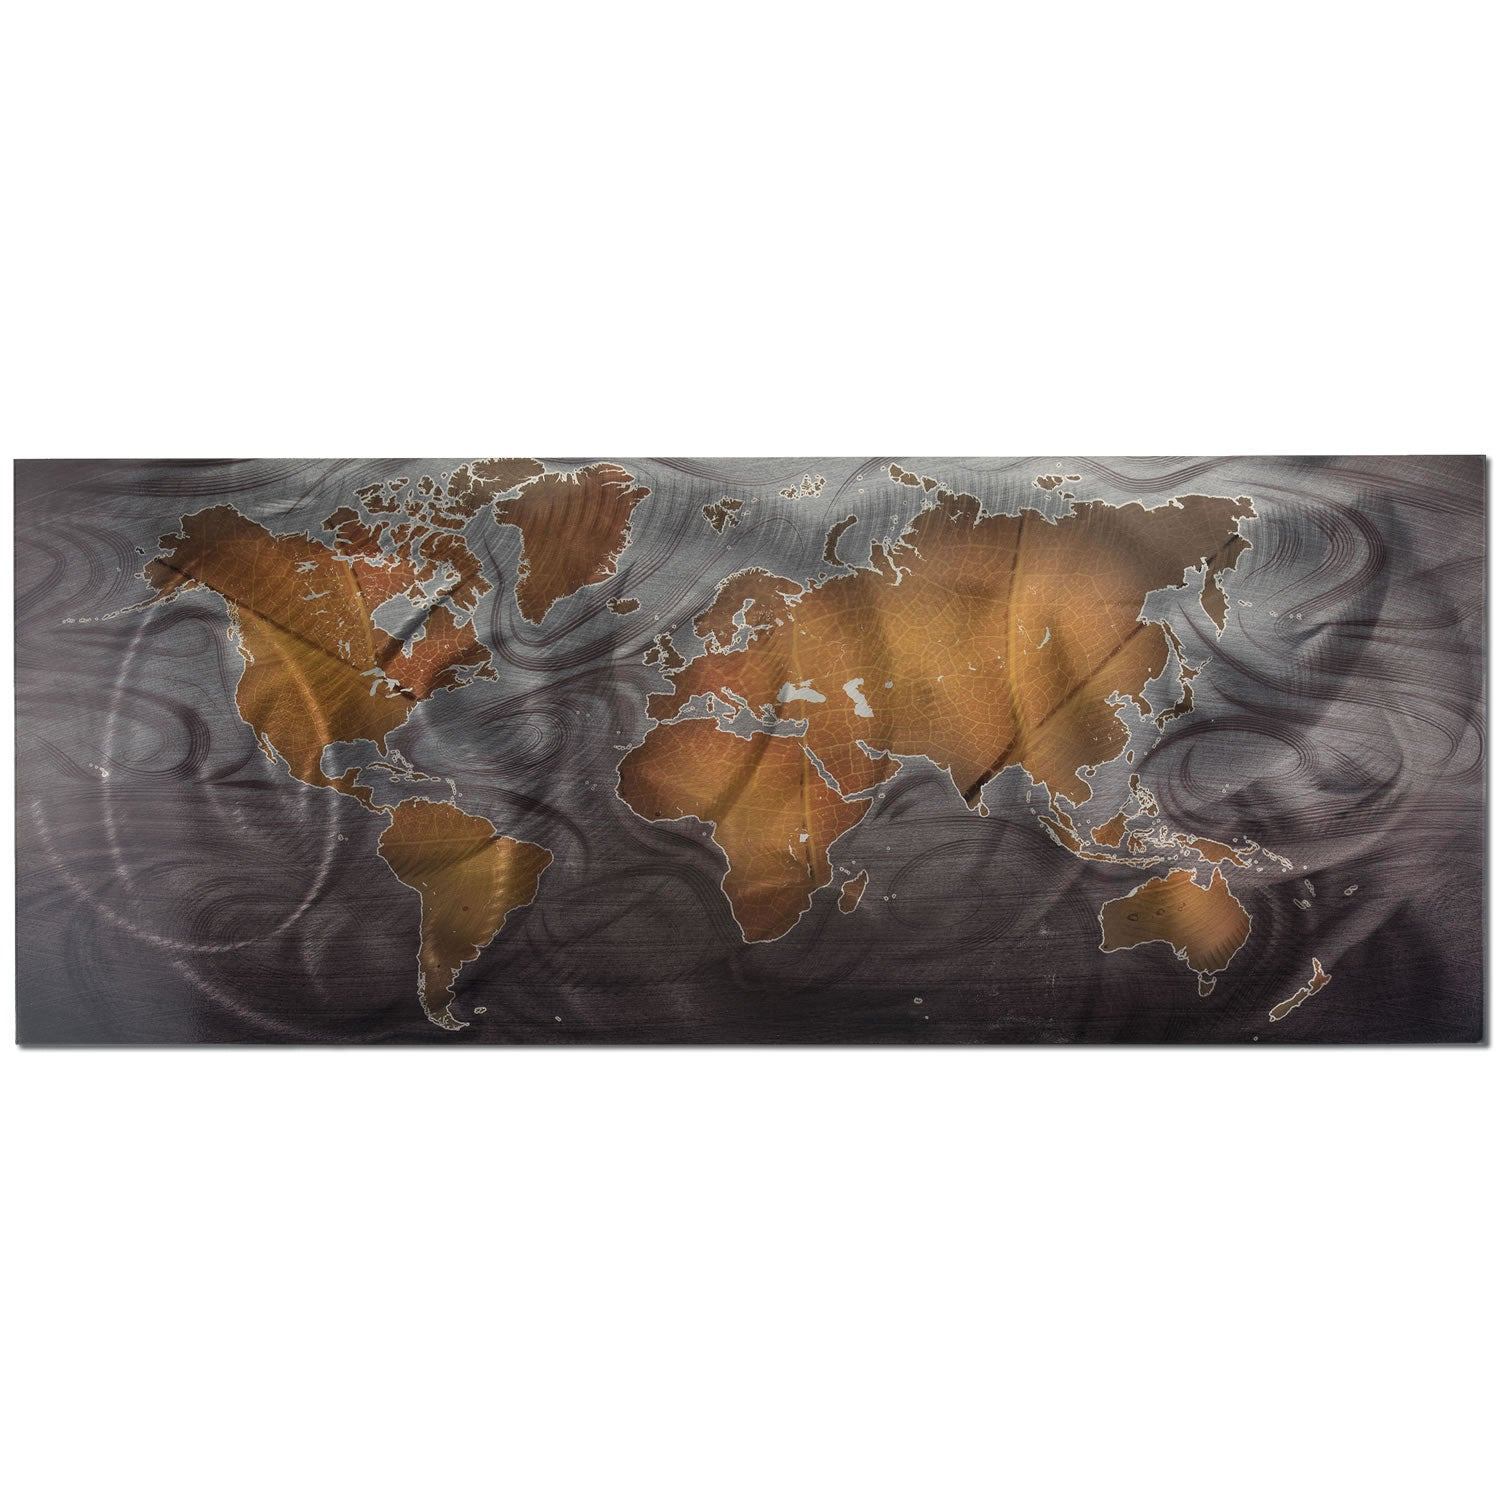 Bronze/Pewter Land & Sea - Large Indoor/Outdoor Modern Metal Wall Art